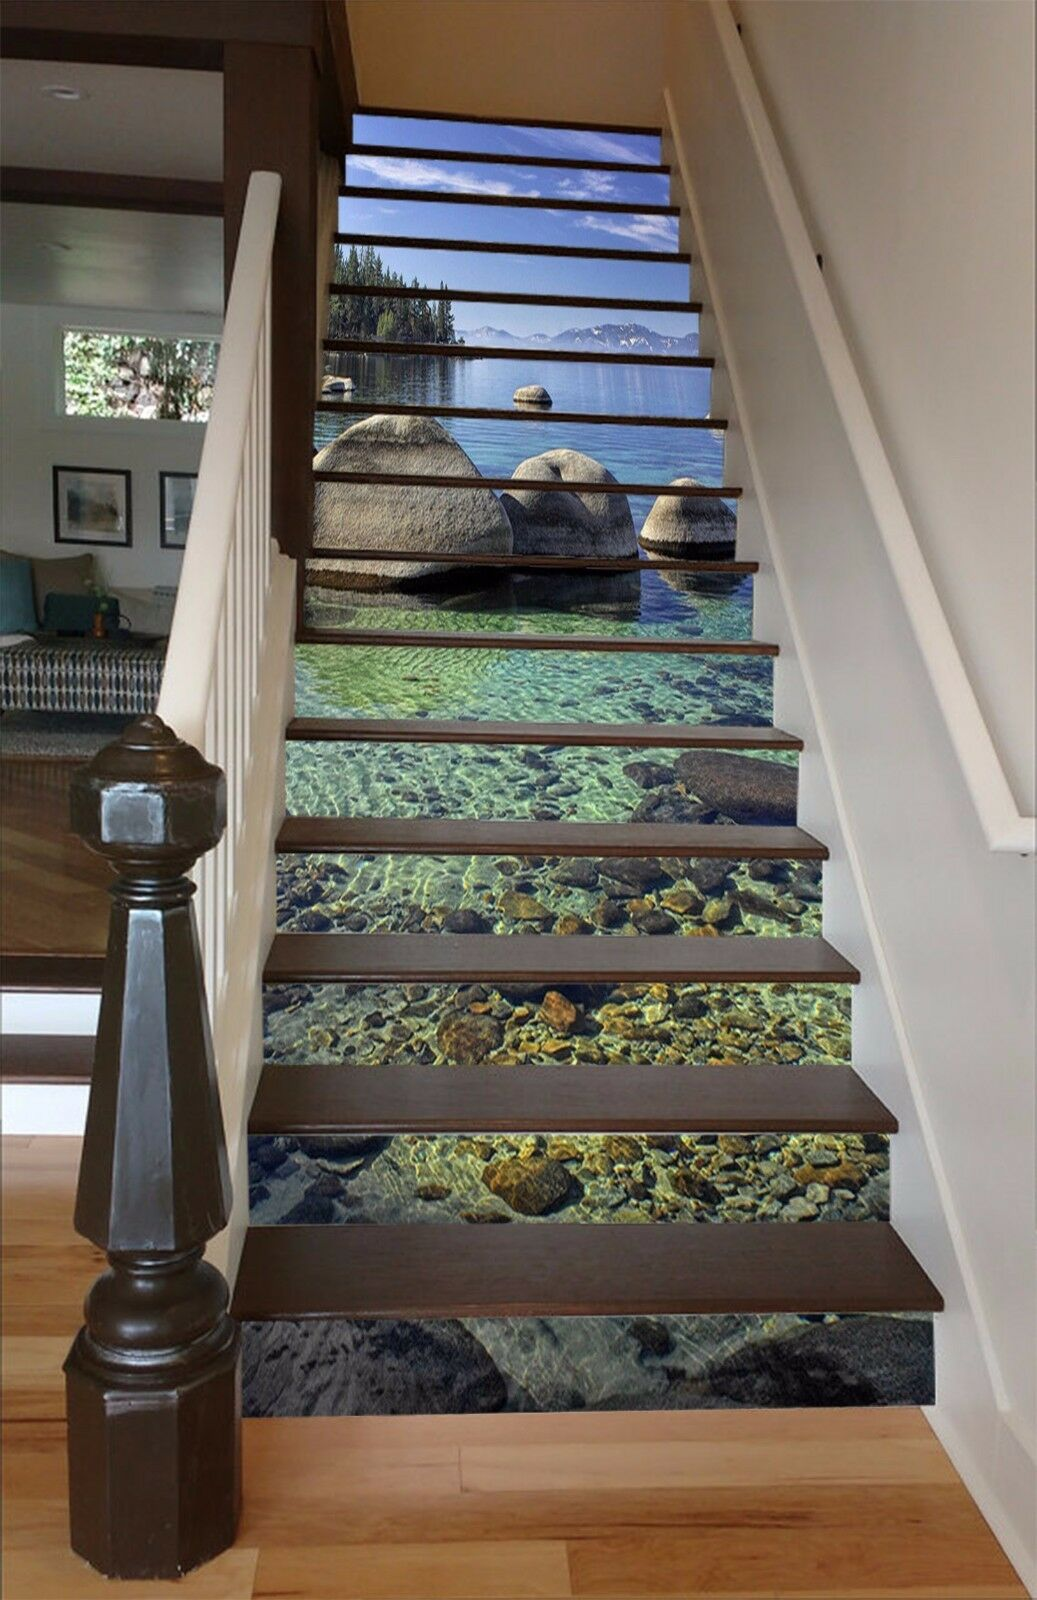 3D Bay Stones 981 Stair Risers Decoration Photo Mural Vinyl Decal Wallpaper AU